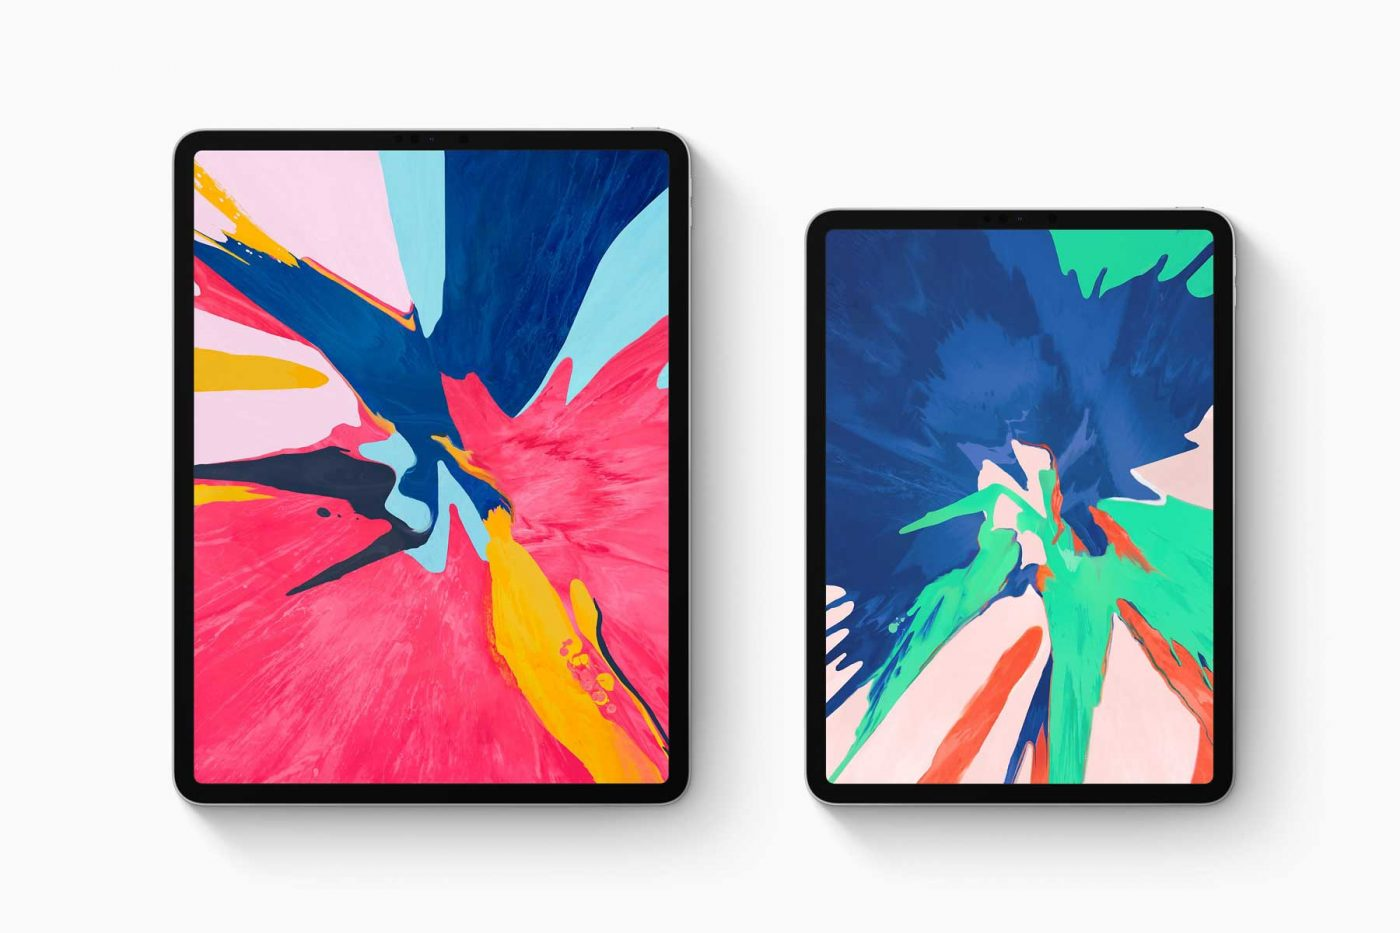 iPad-Pro-11-inch-and-12-inch-side-by-side